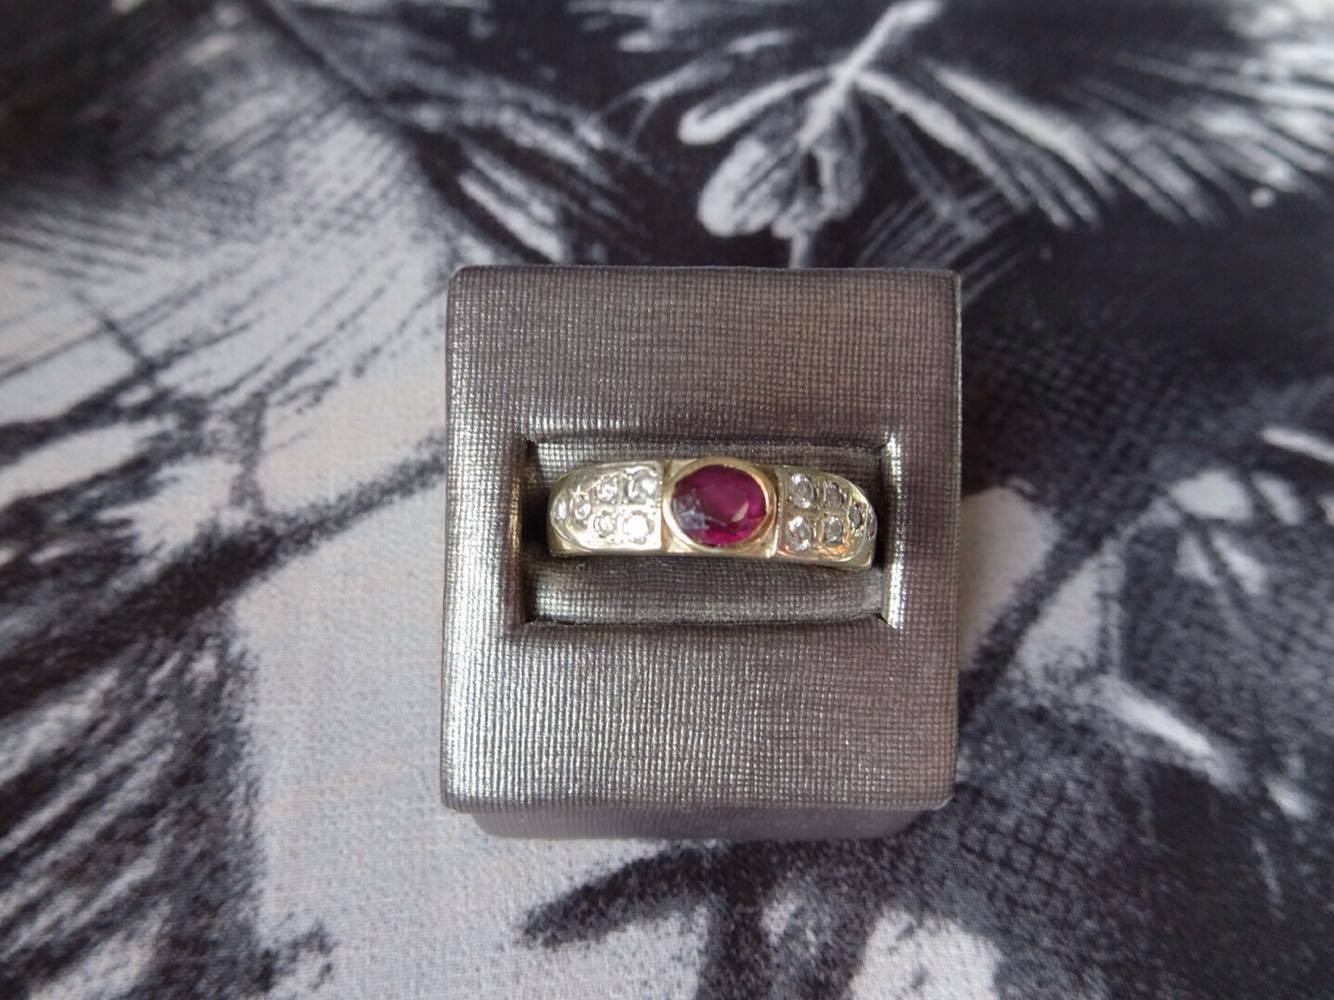 View of hand made ring